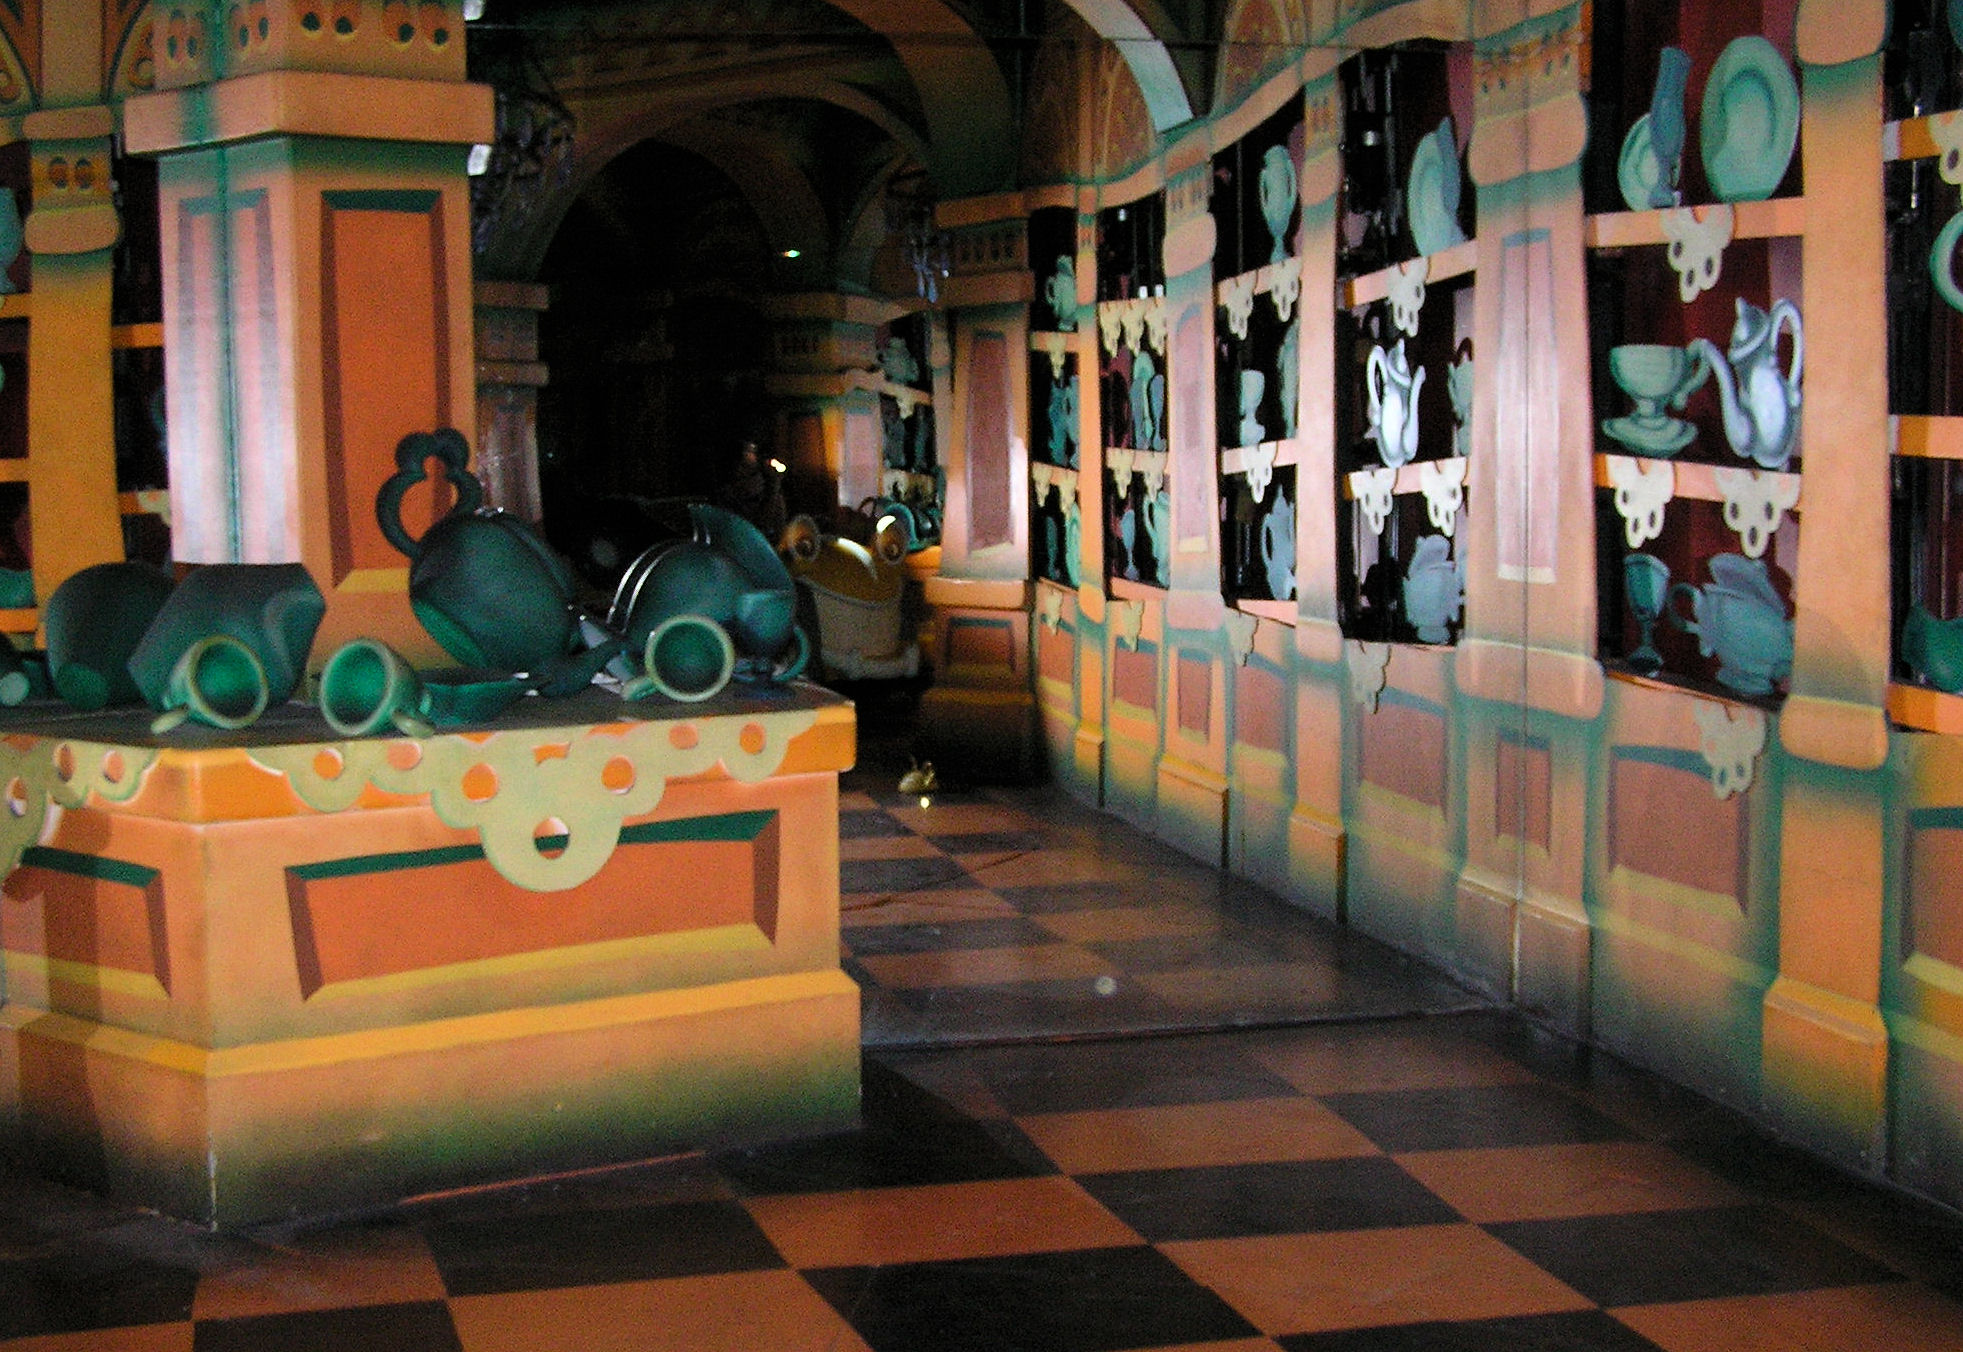 A Hidden Mickey made out of doilies in Roger Rabbit's Car Toon Spin in Mickey's Toontown at Disneyland.